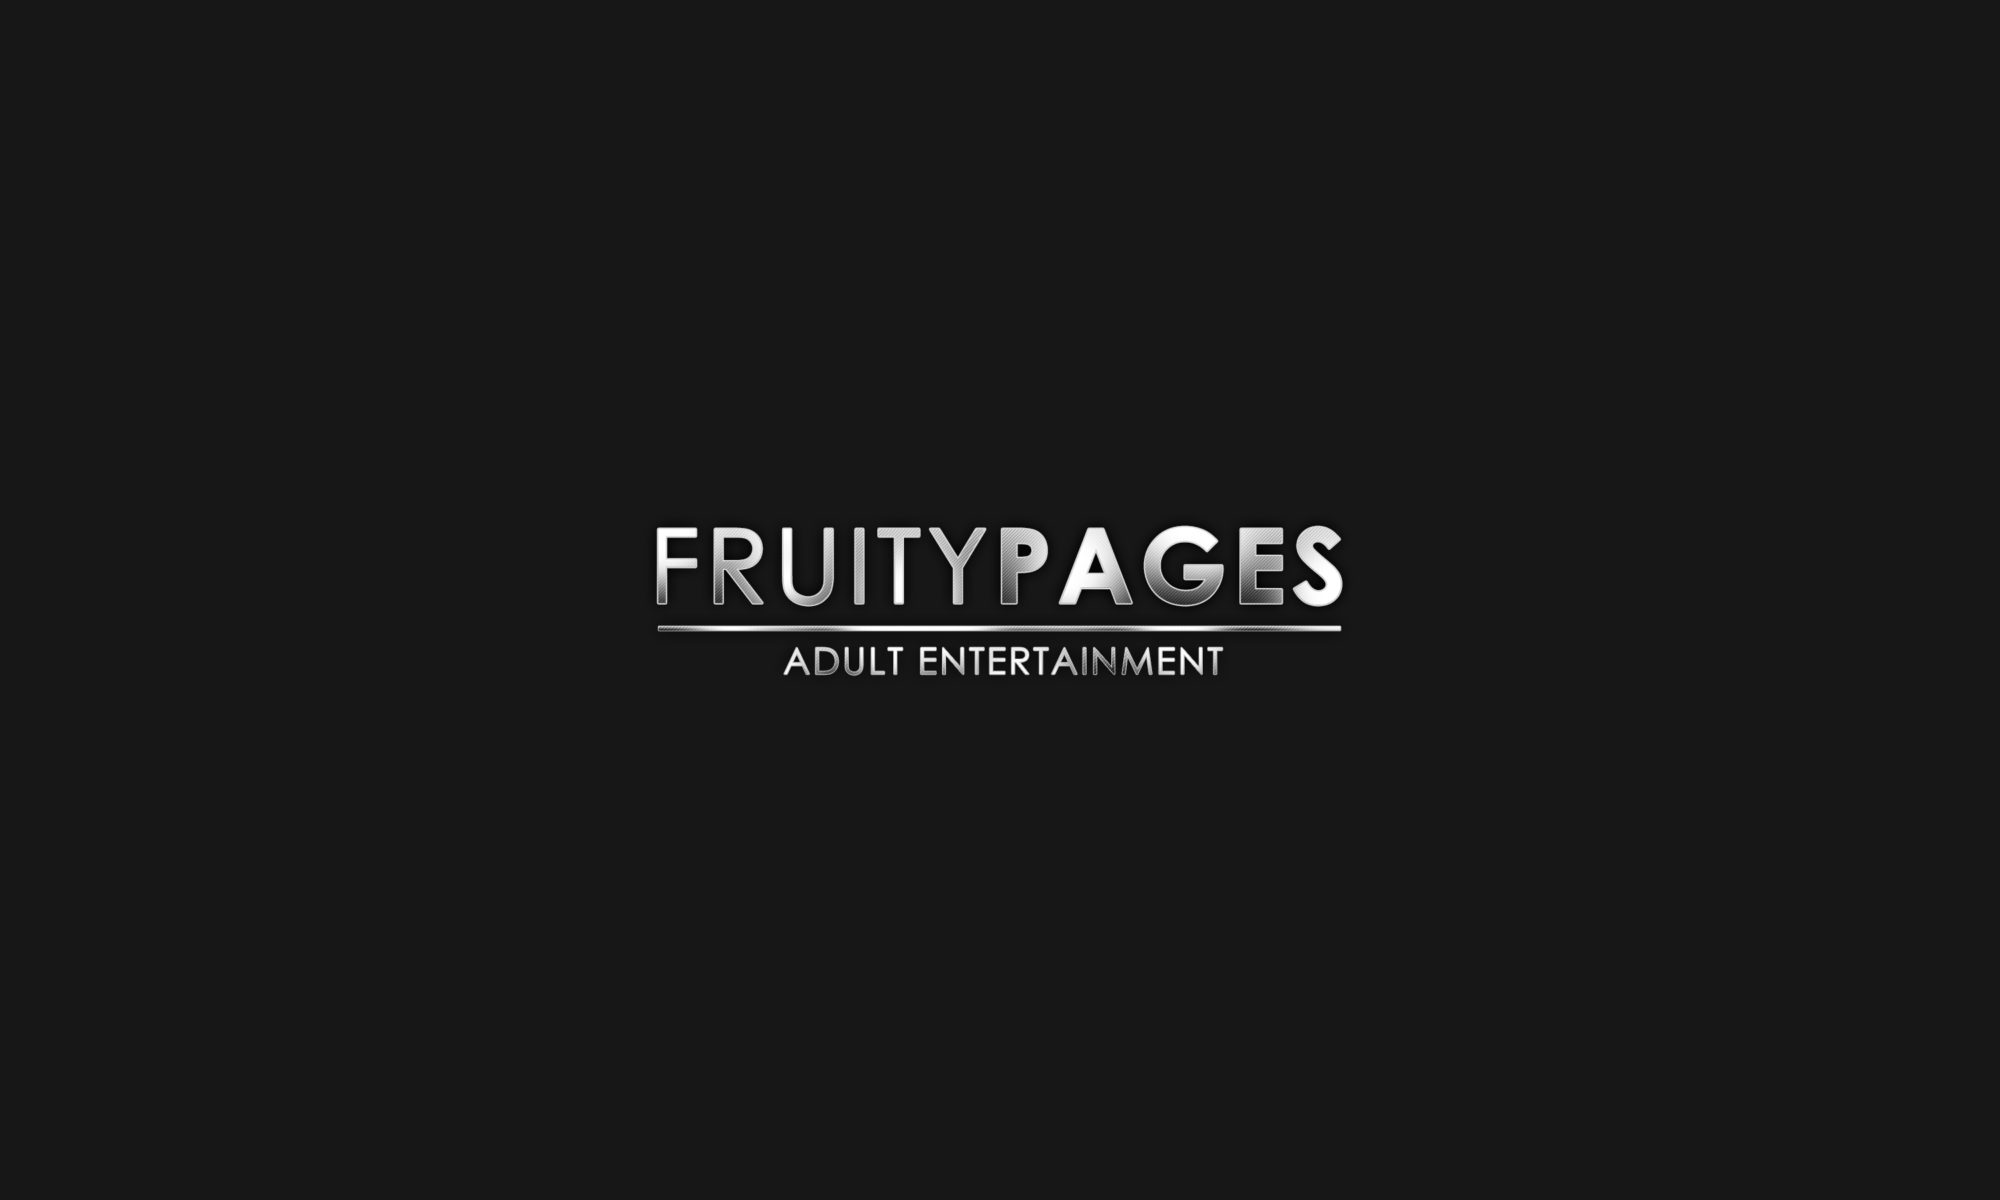 FruityPages